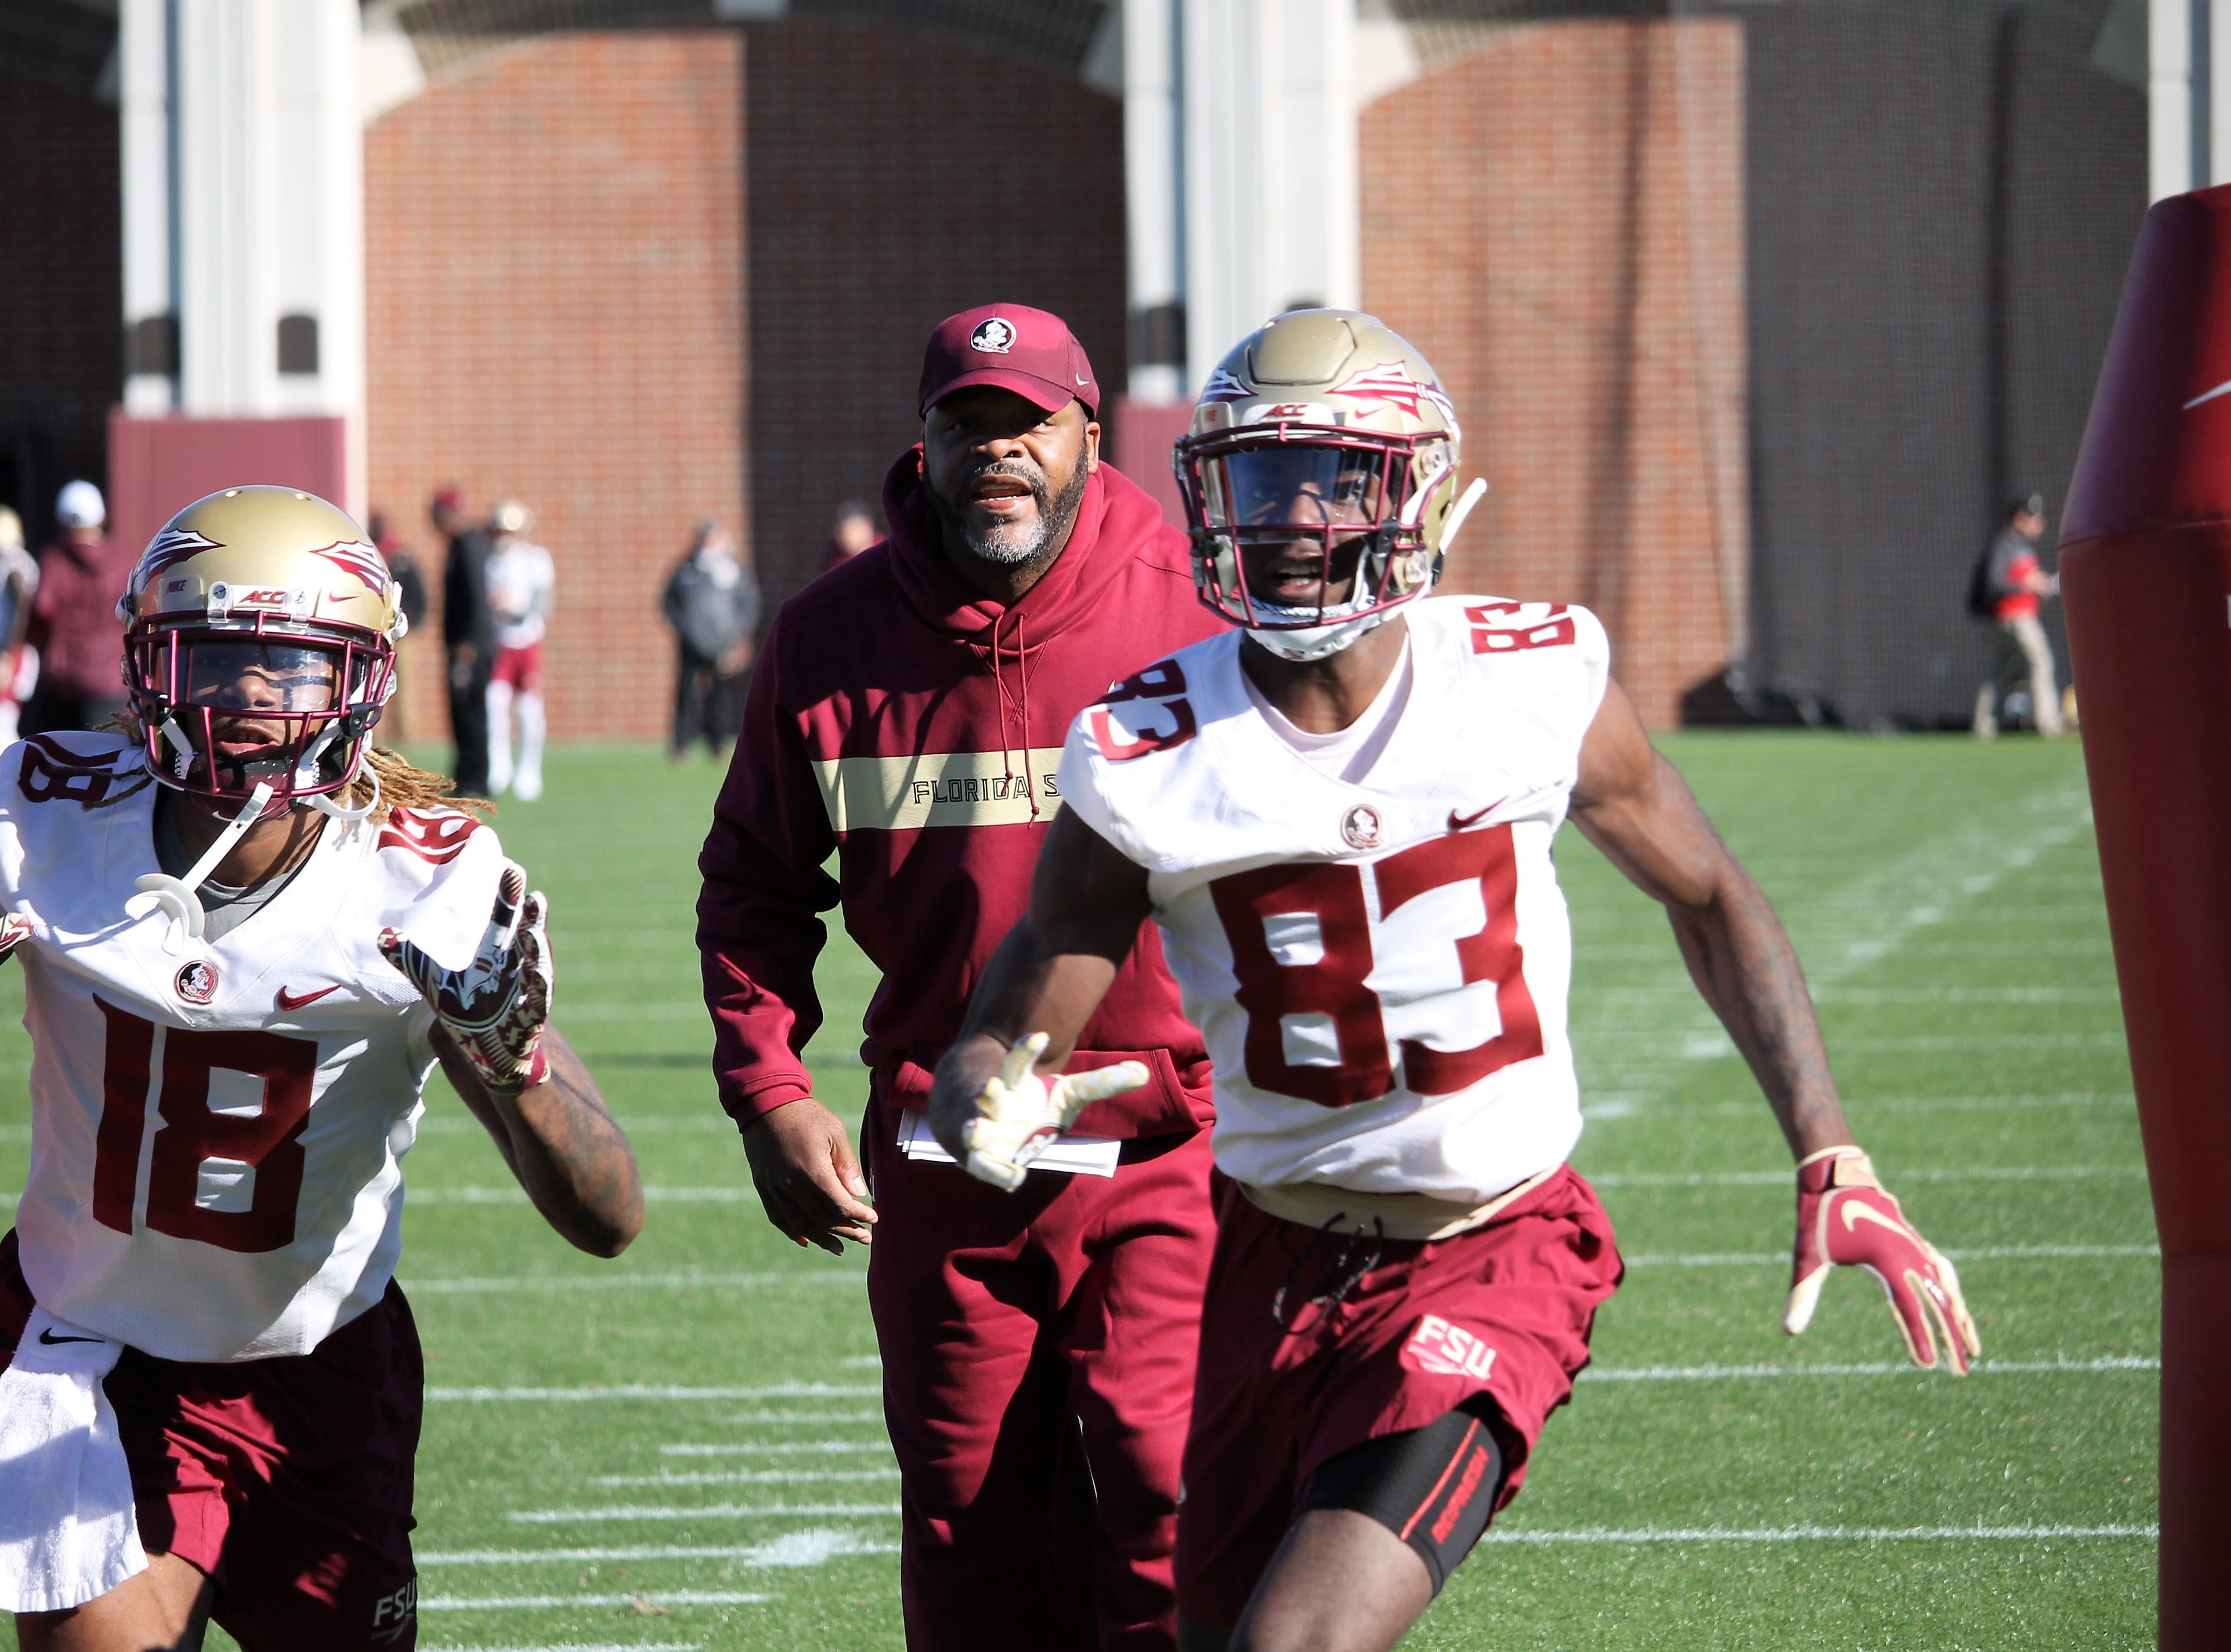 Wide receivers Warren Thompson (18) and Jordan Young (83) at FSU football practice on March 6, 2019.